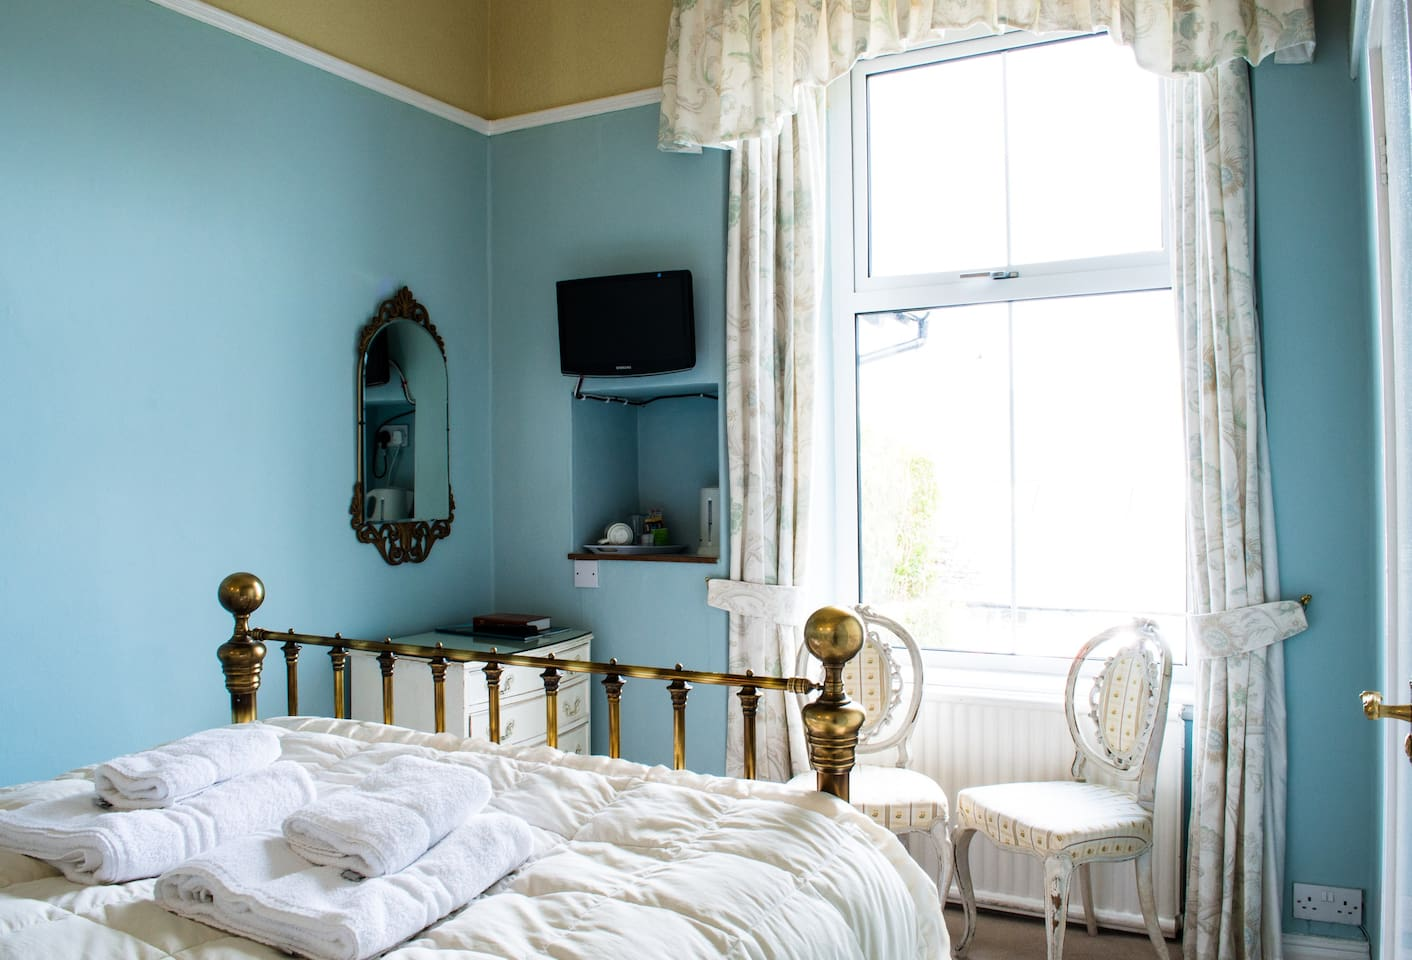 The Blue Room has a very comfortable bespoke pocket sprung bed from the upmarket bed shop, And So To Bed. We only use quality linens, including the expensive (though now defunct) original Dormer bedding.